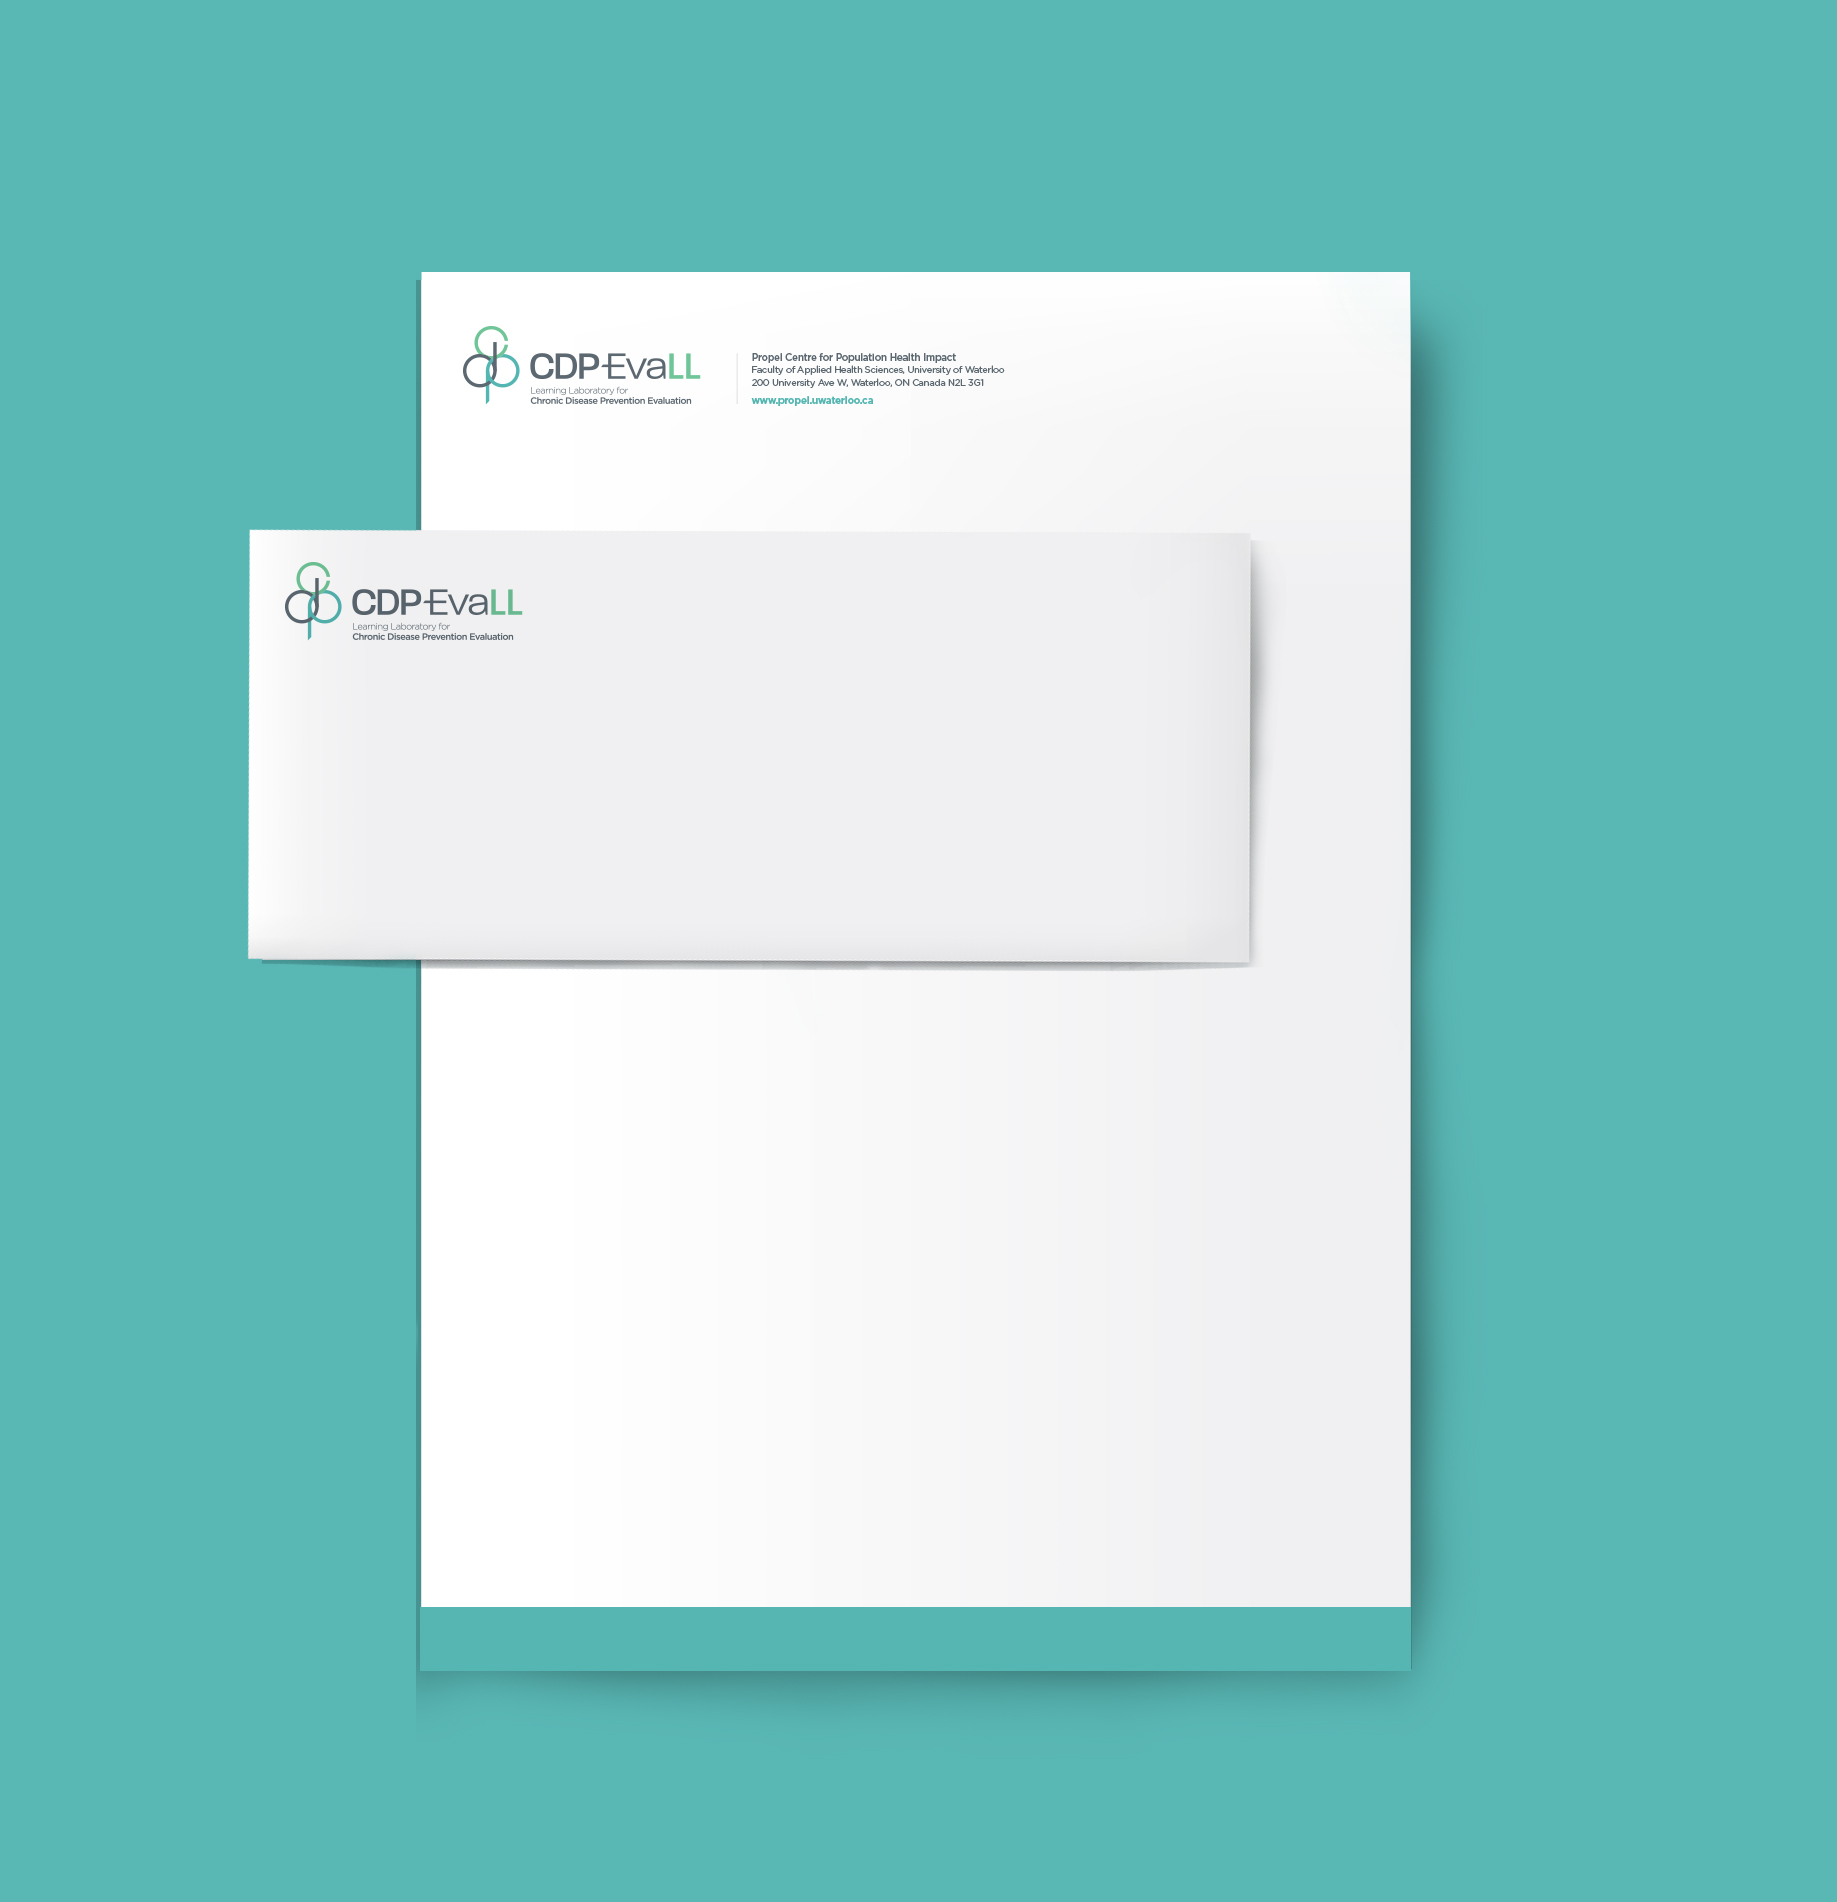 CDP Evall stationery design